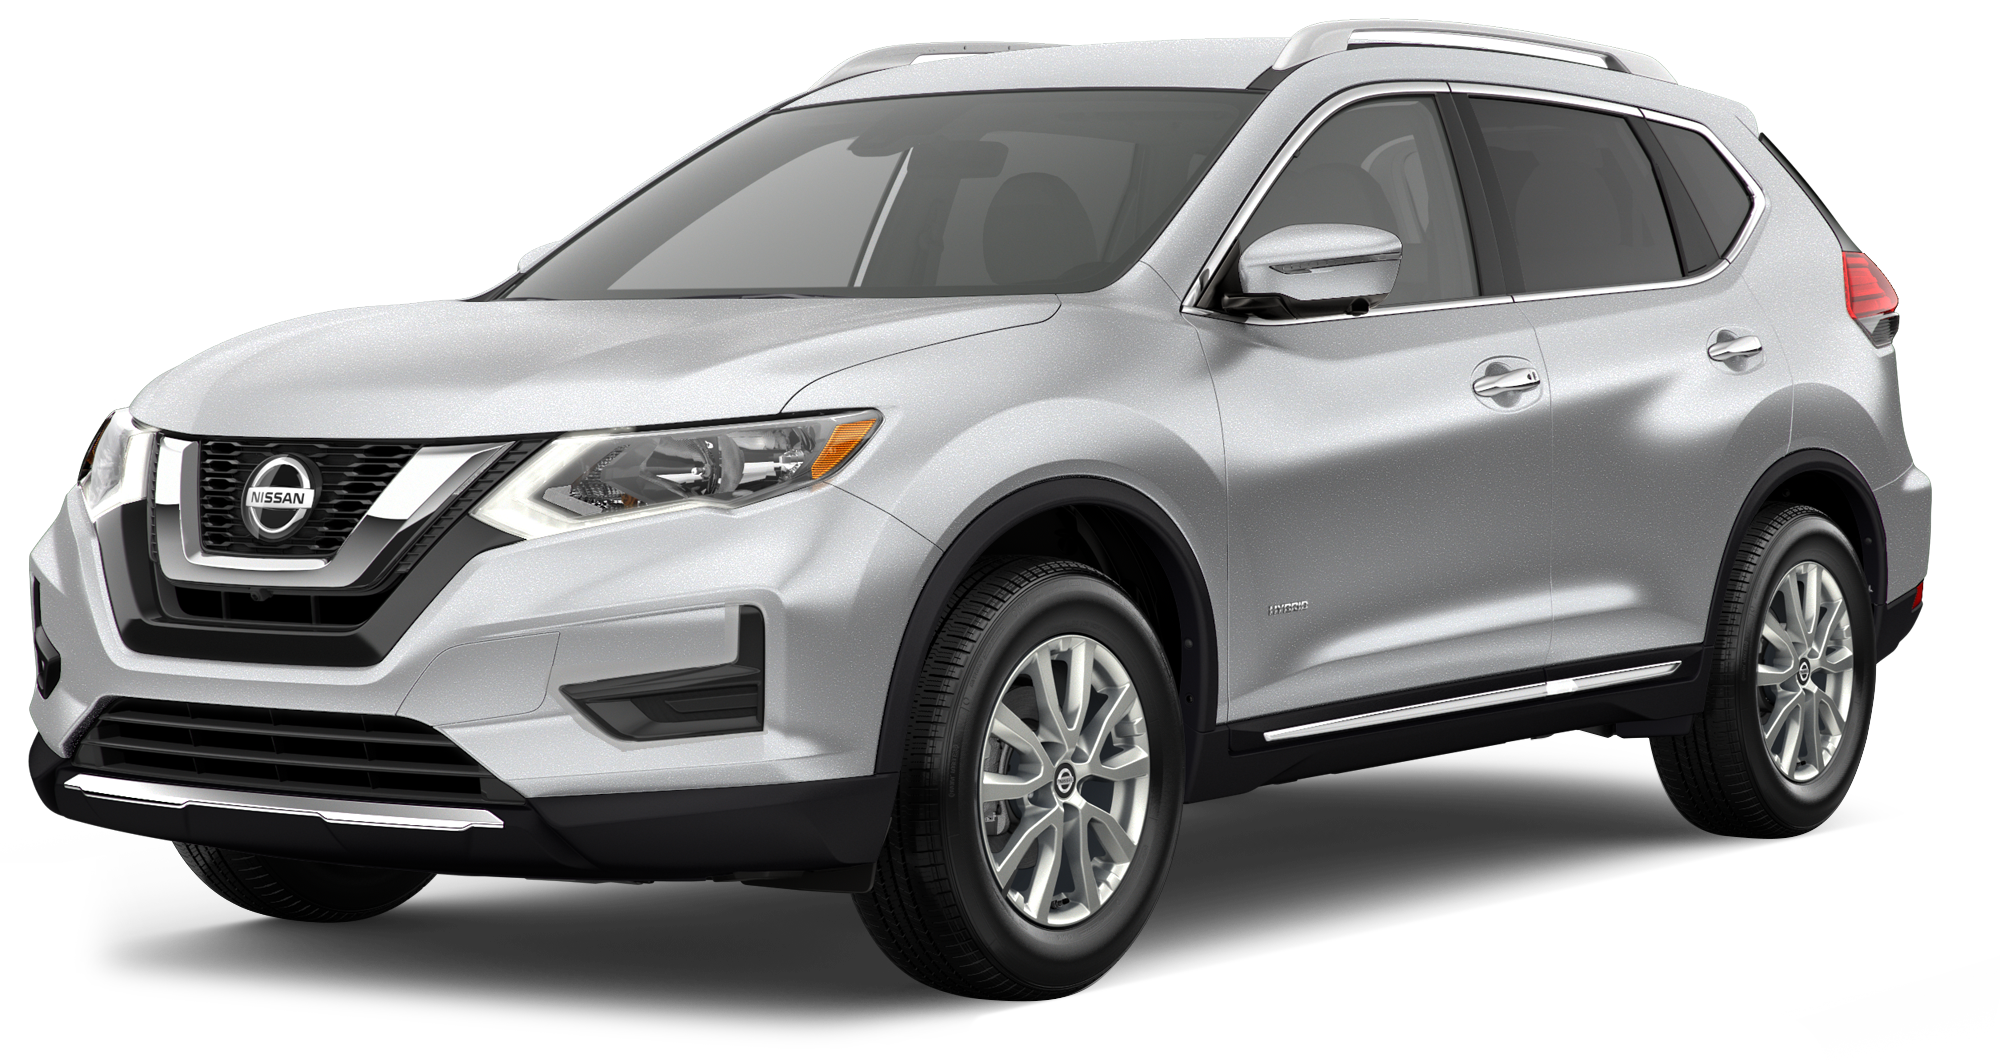 2019 Nissan Rogue Hybrid Incentives, Specials & Offers in San Angelo TX